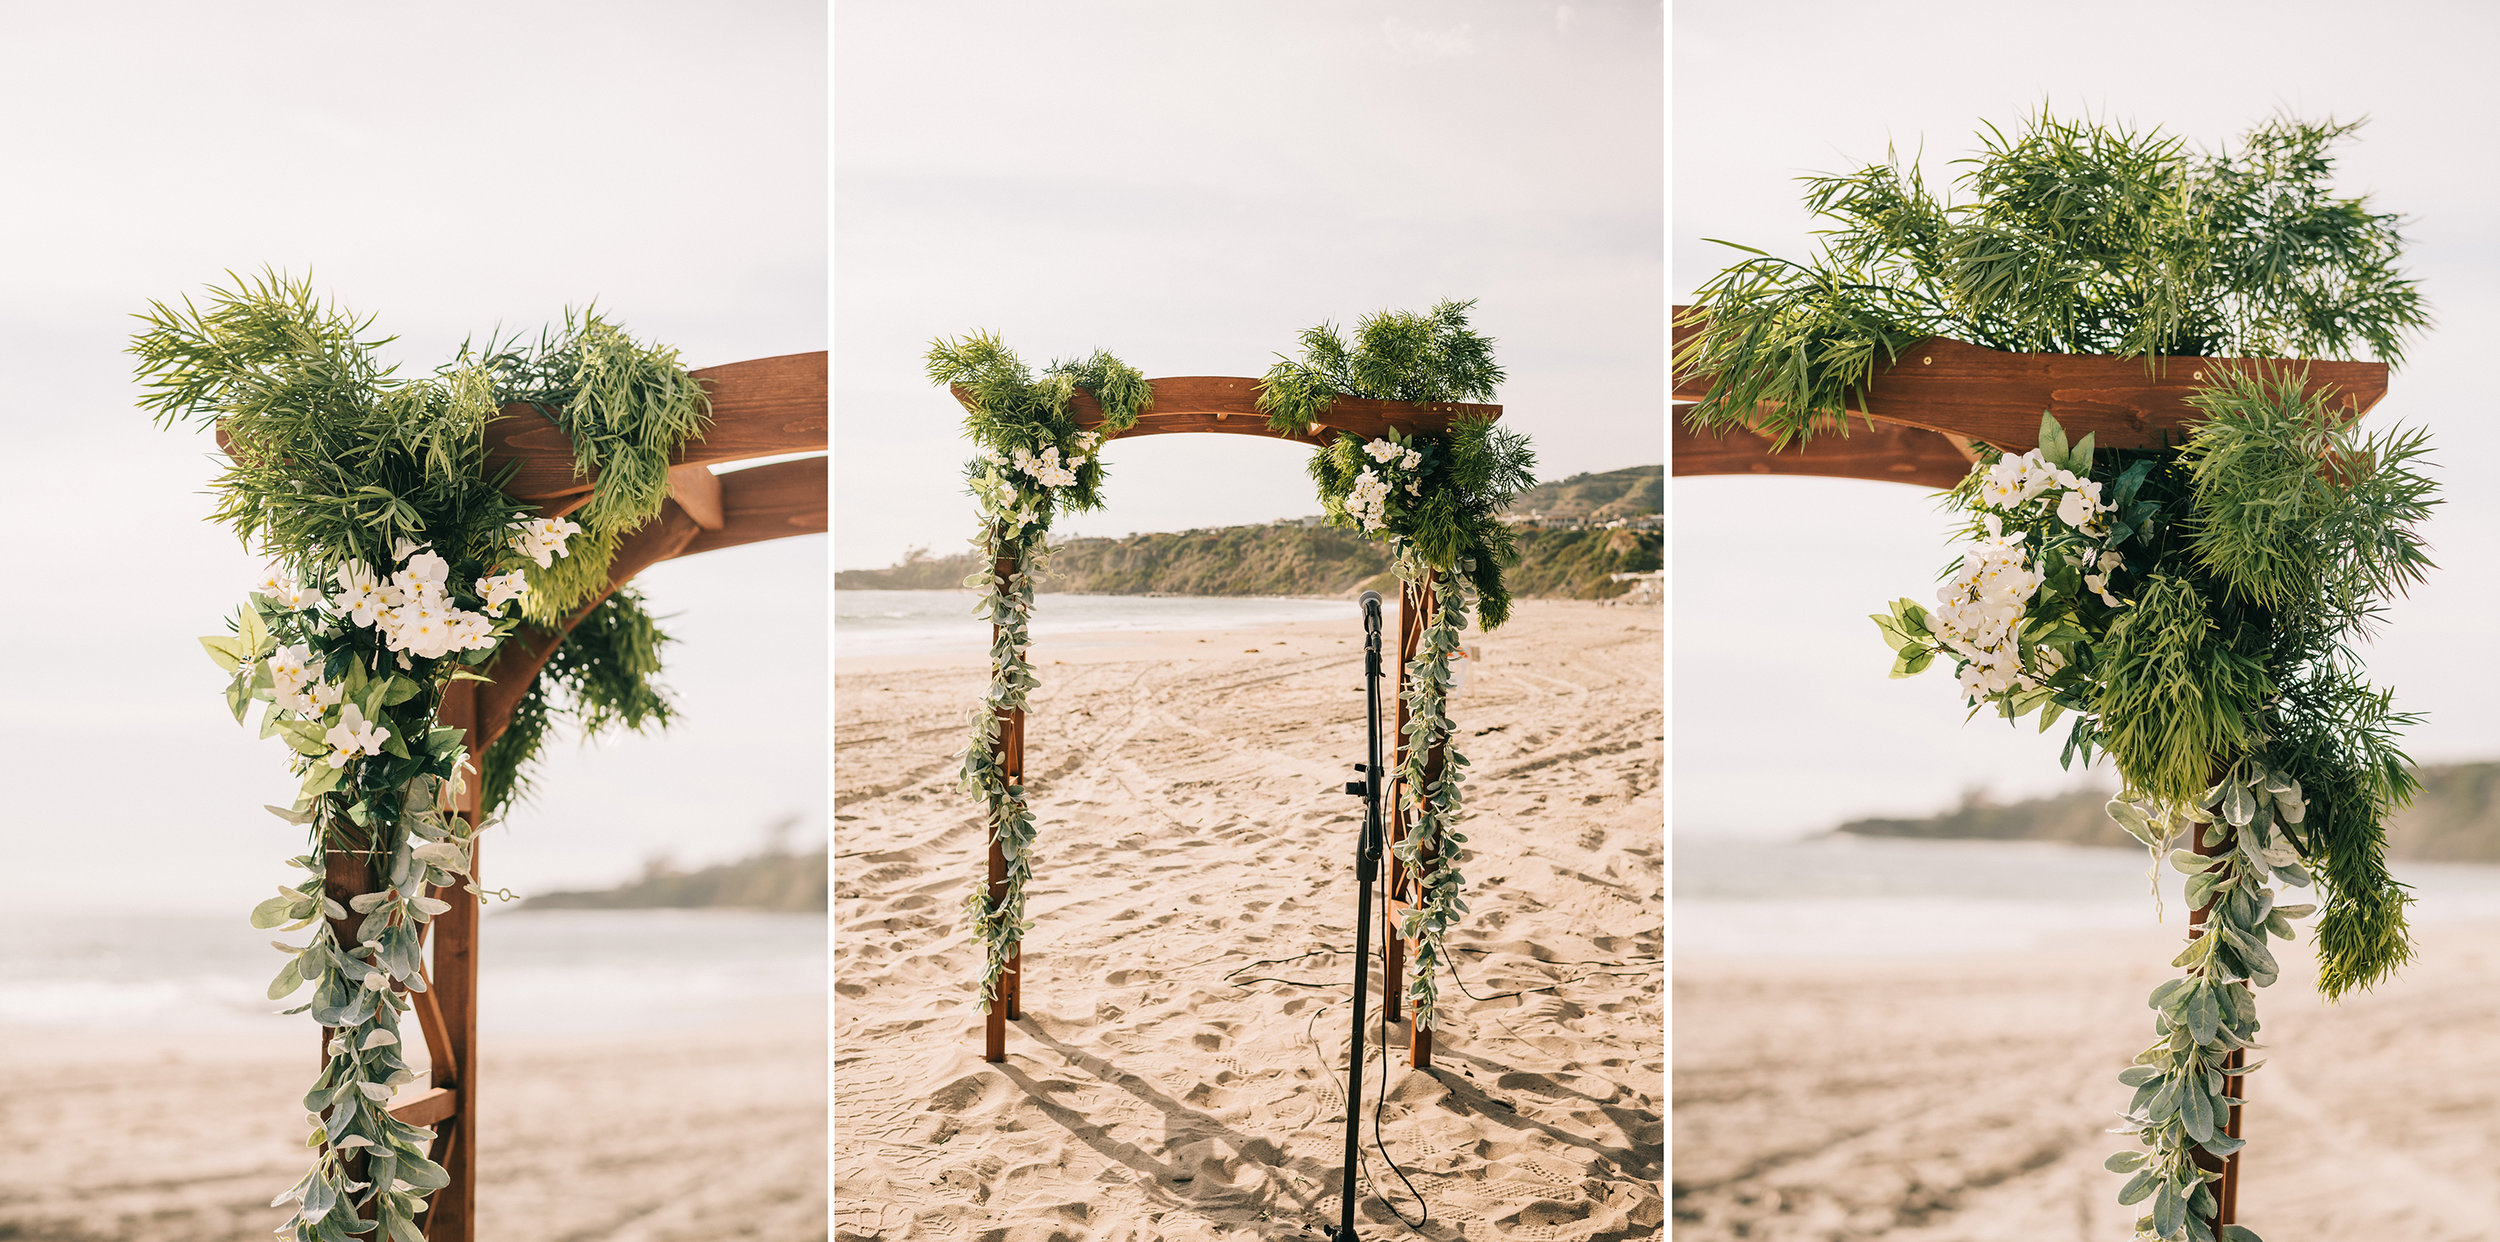 southern california laguna beach salt creek beach los angeles socal boho bay area akland san francisco engagement wedding nontraditional fun creative eclectic photographer magic-378.jpg